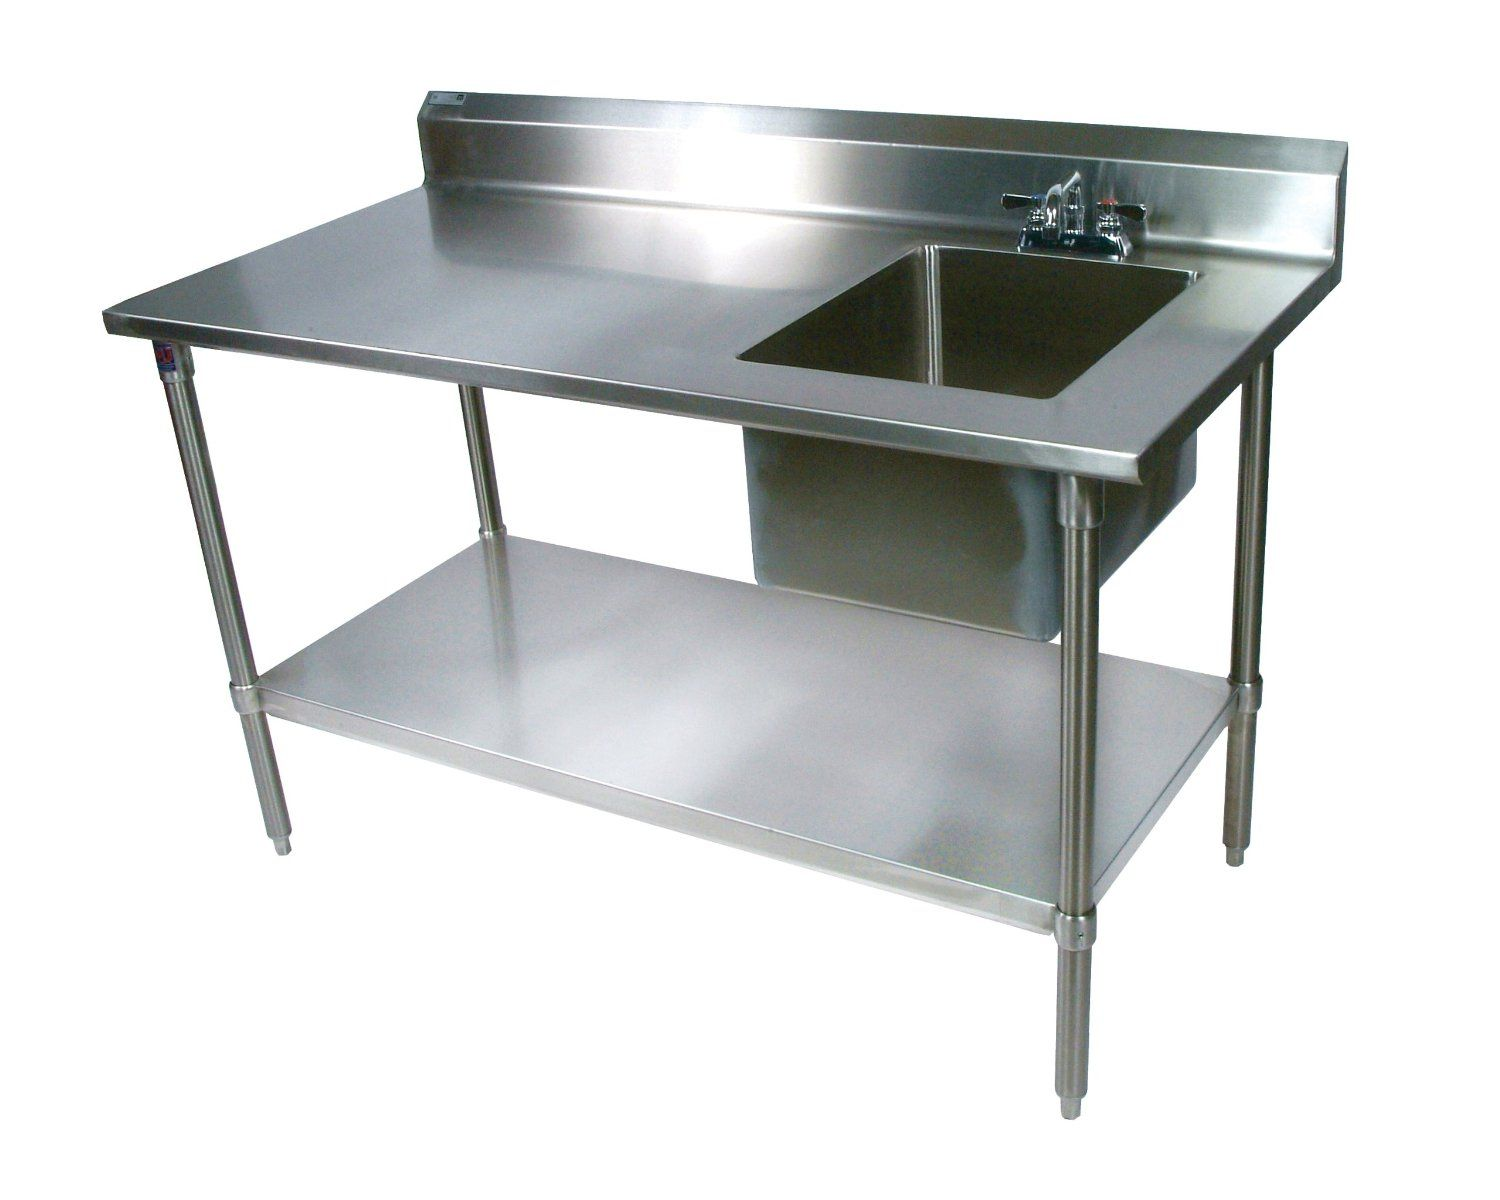 Stainless Steel Kitchen Table Cherry Wood Cabinets Single Work Sink With Faucet Pinterest